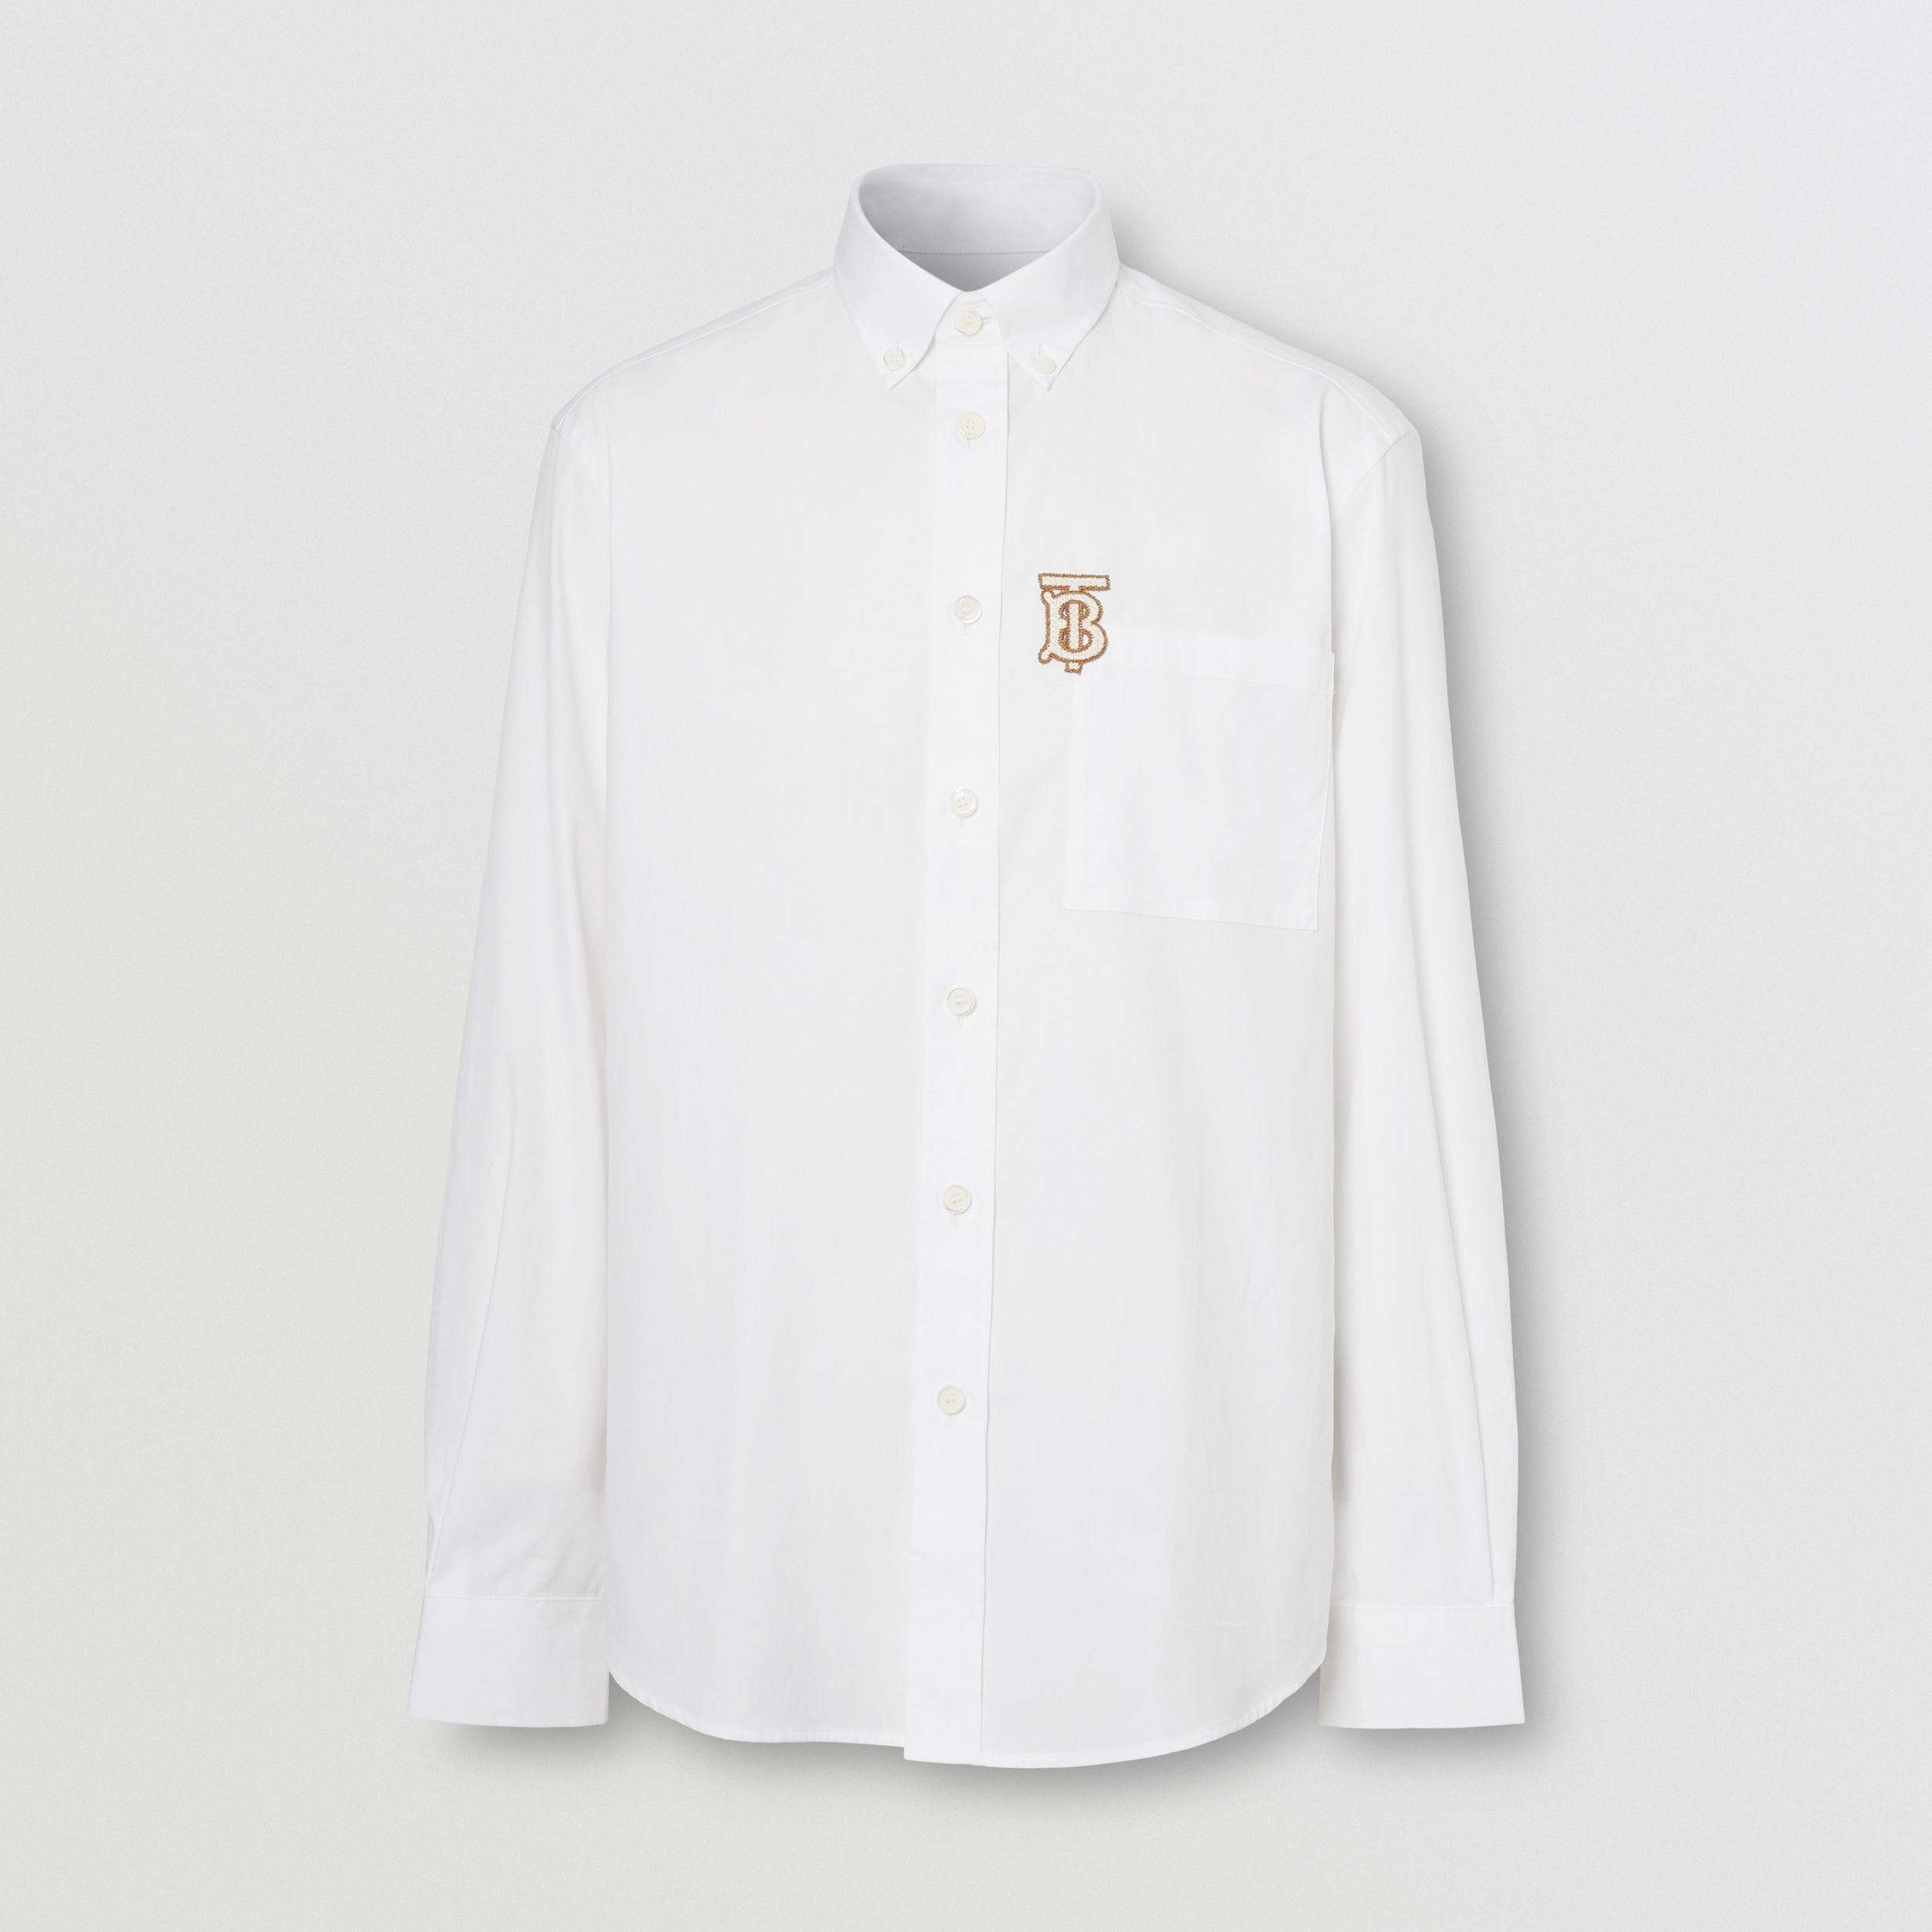 Monogrom Motif Stretch Cotton Poplin Shirt in White - Men | Burberry - 4